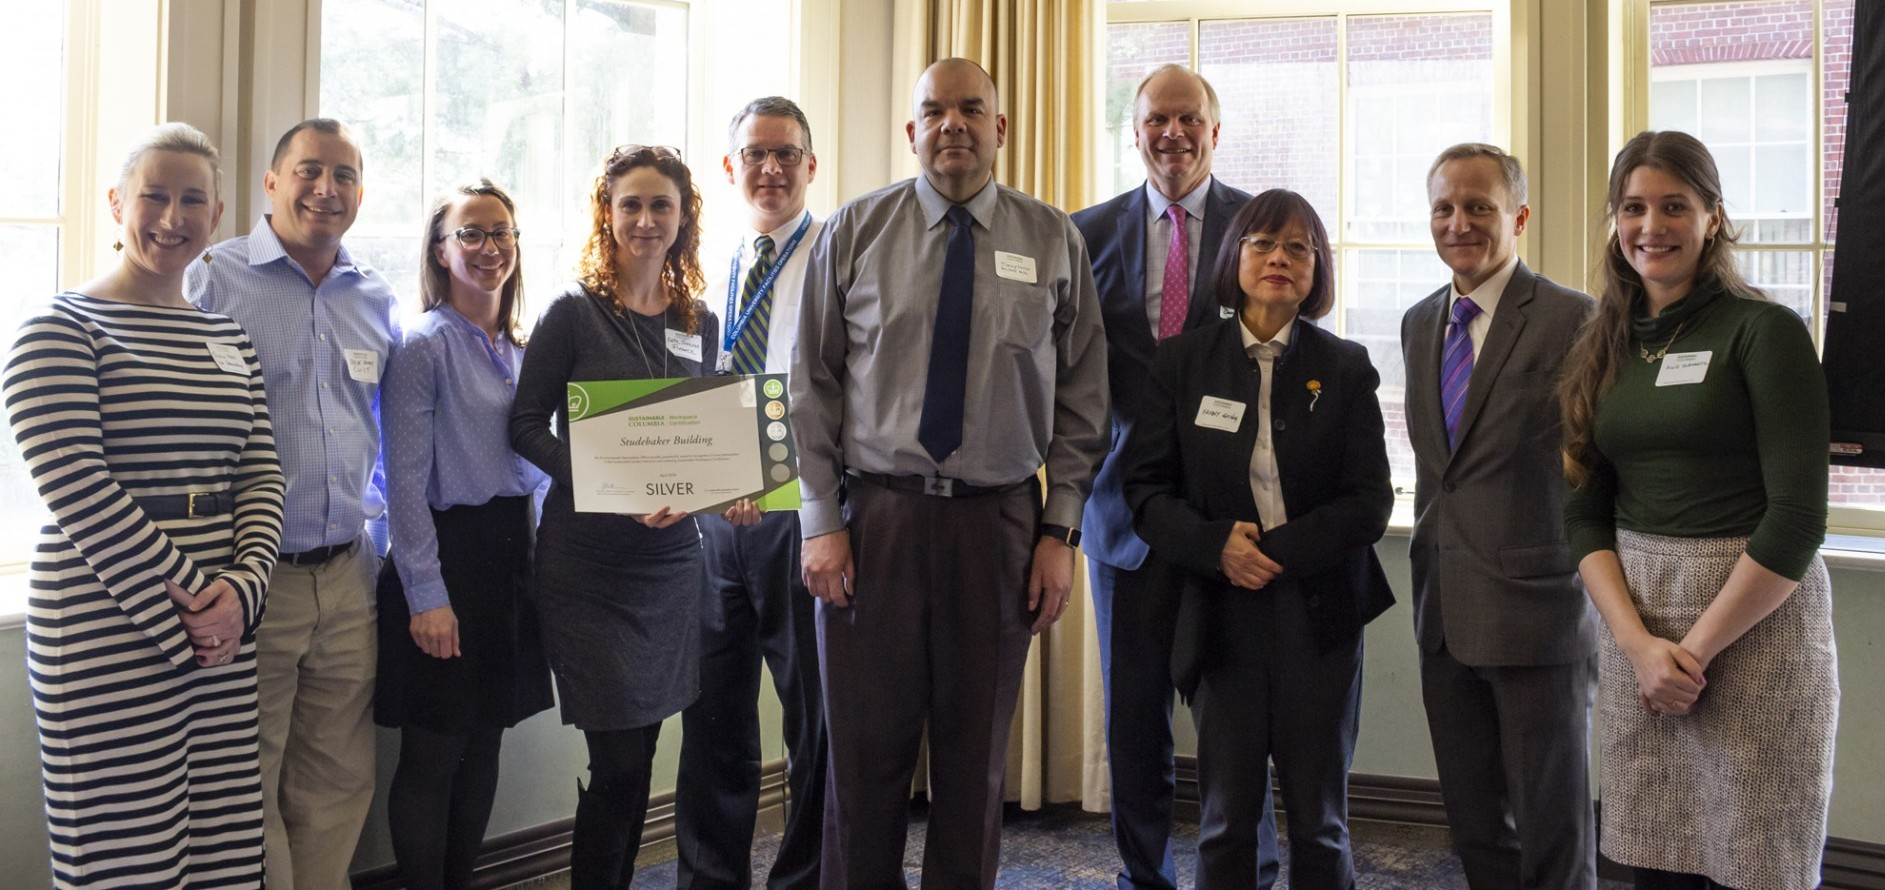 Studebaker building Green Council is recognized